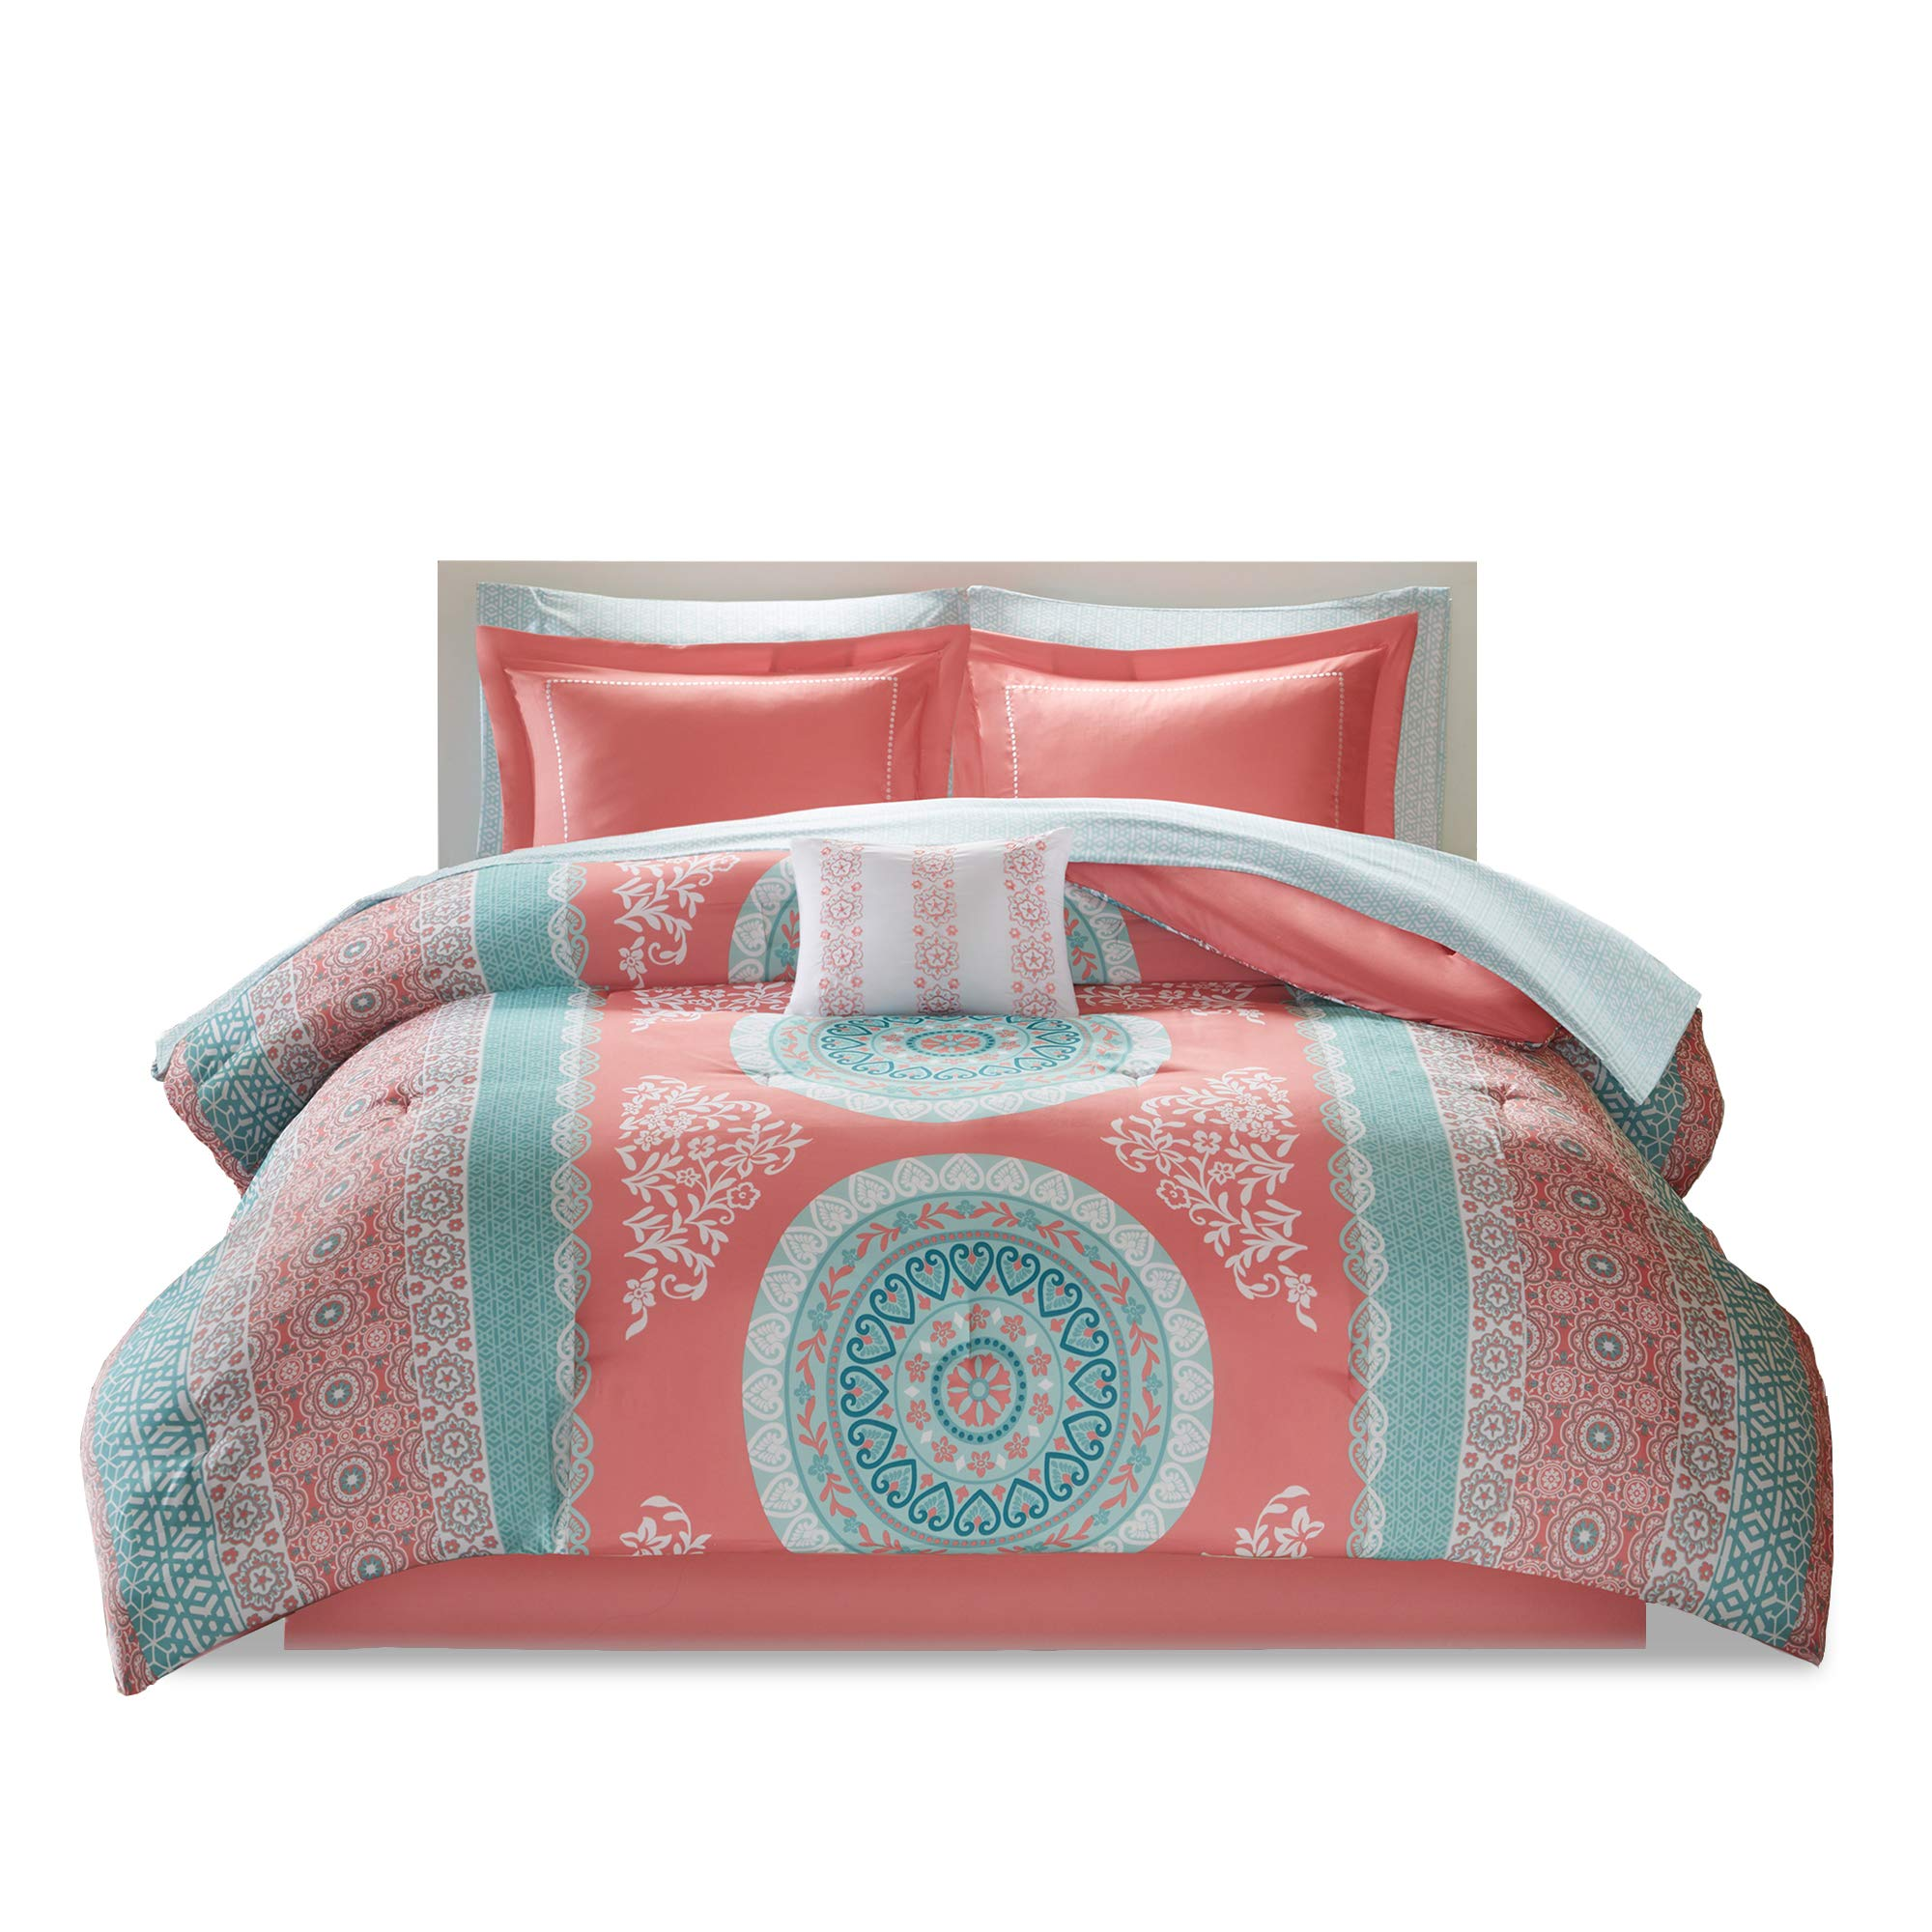 Bed Room Twin XL Twin Bed Comforter 1 Sham /& 1 Dec Pillow- Adele Includes 1 Comforter Fits Twin and Twin XL- 3 Piece All Season Bed in A Bag Set- Aqua /& Grey